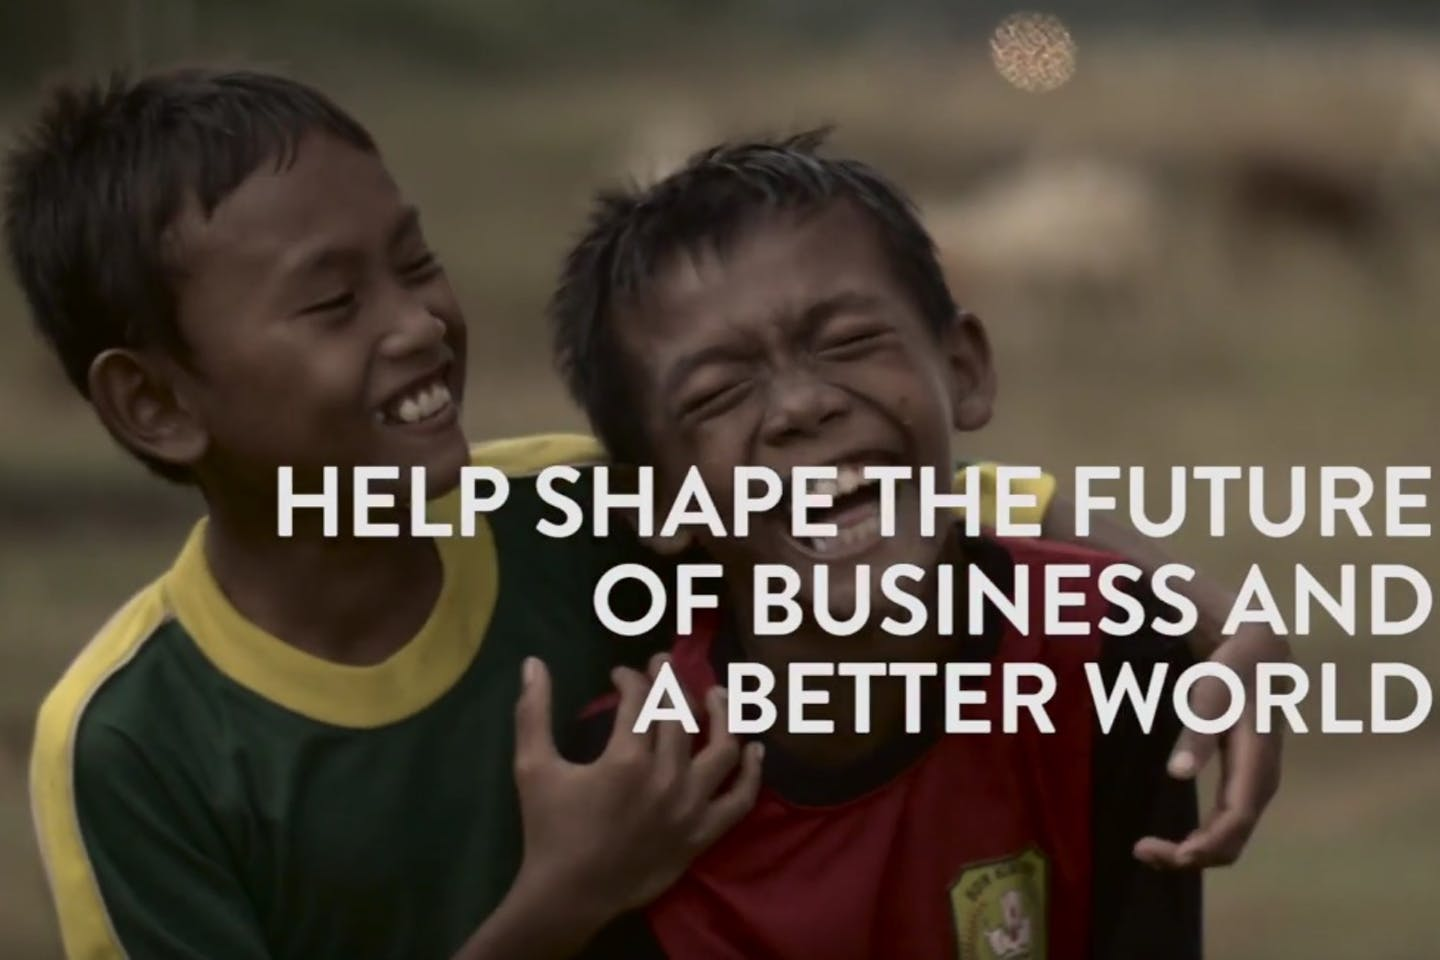 Help shape the future of business